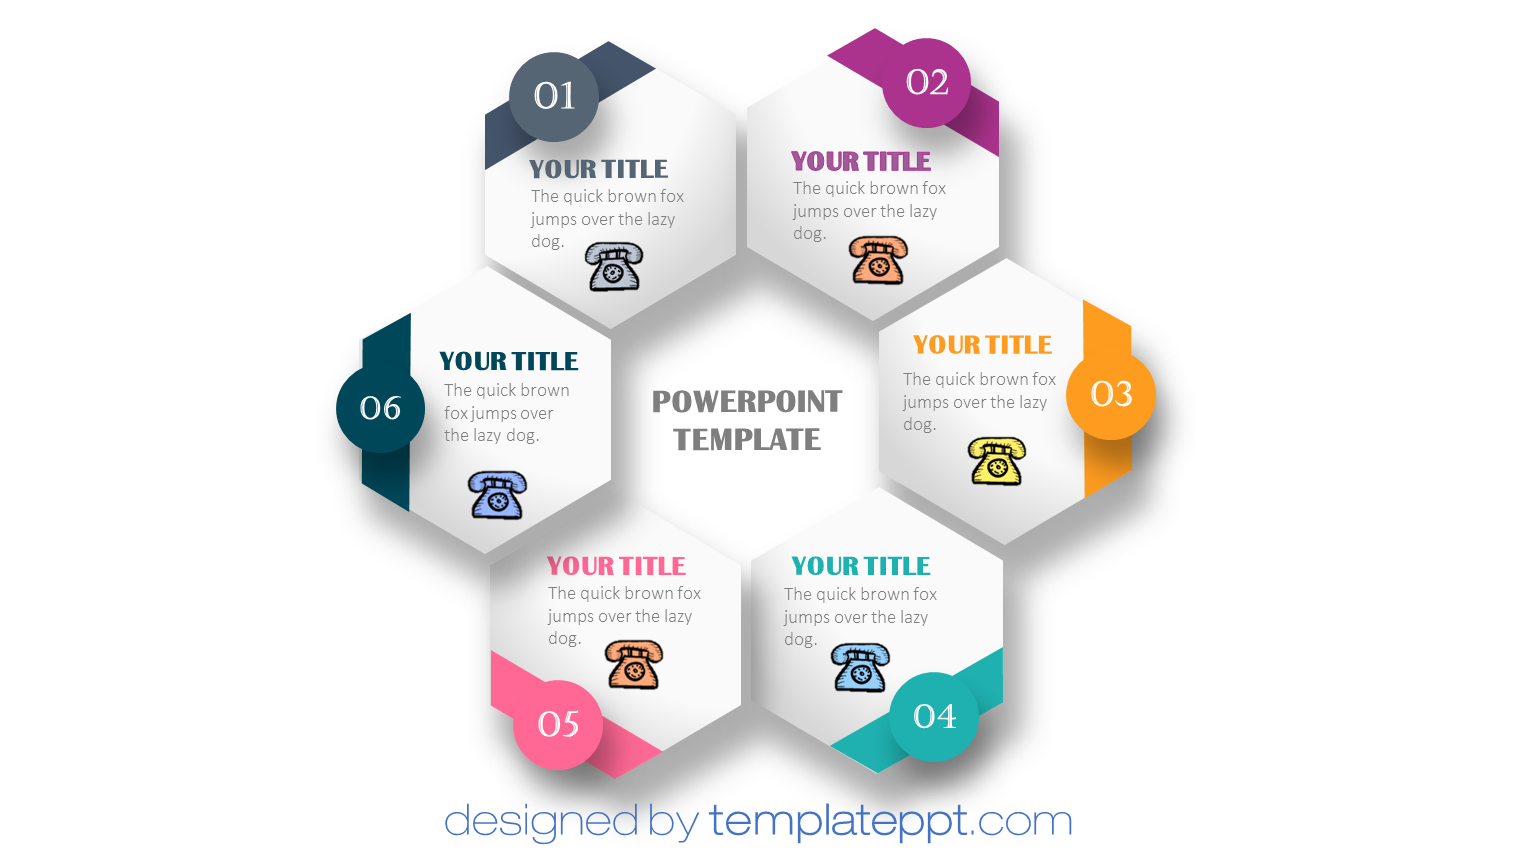 best animated ppt templates free download | ppt | pinterest | ppt, Powerpoint templates